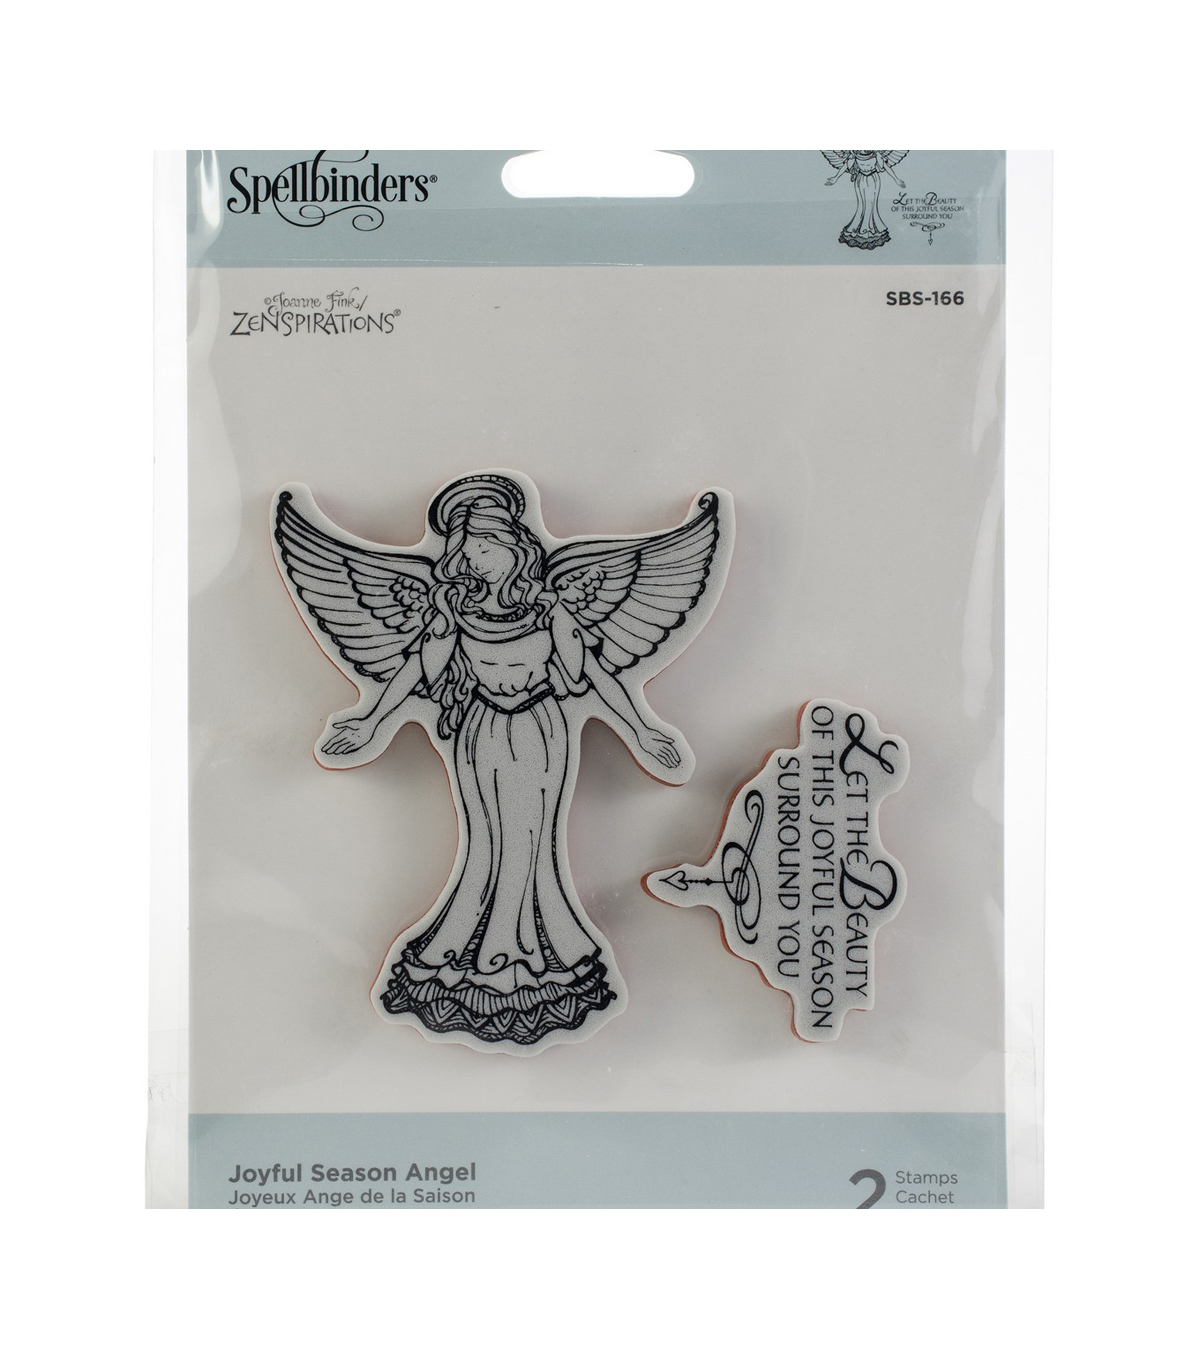 Spellbinders Zenspired Holidays 2 pk Cling Stamps-Joyful Season Angel